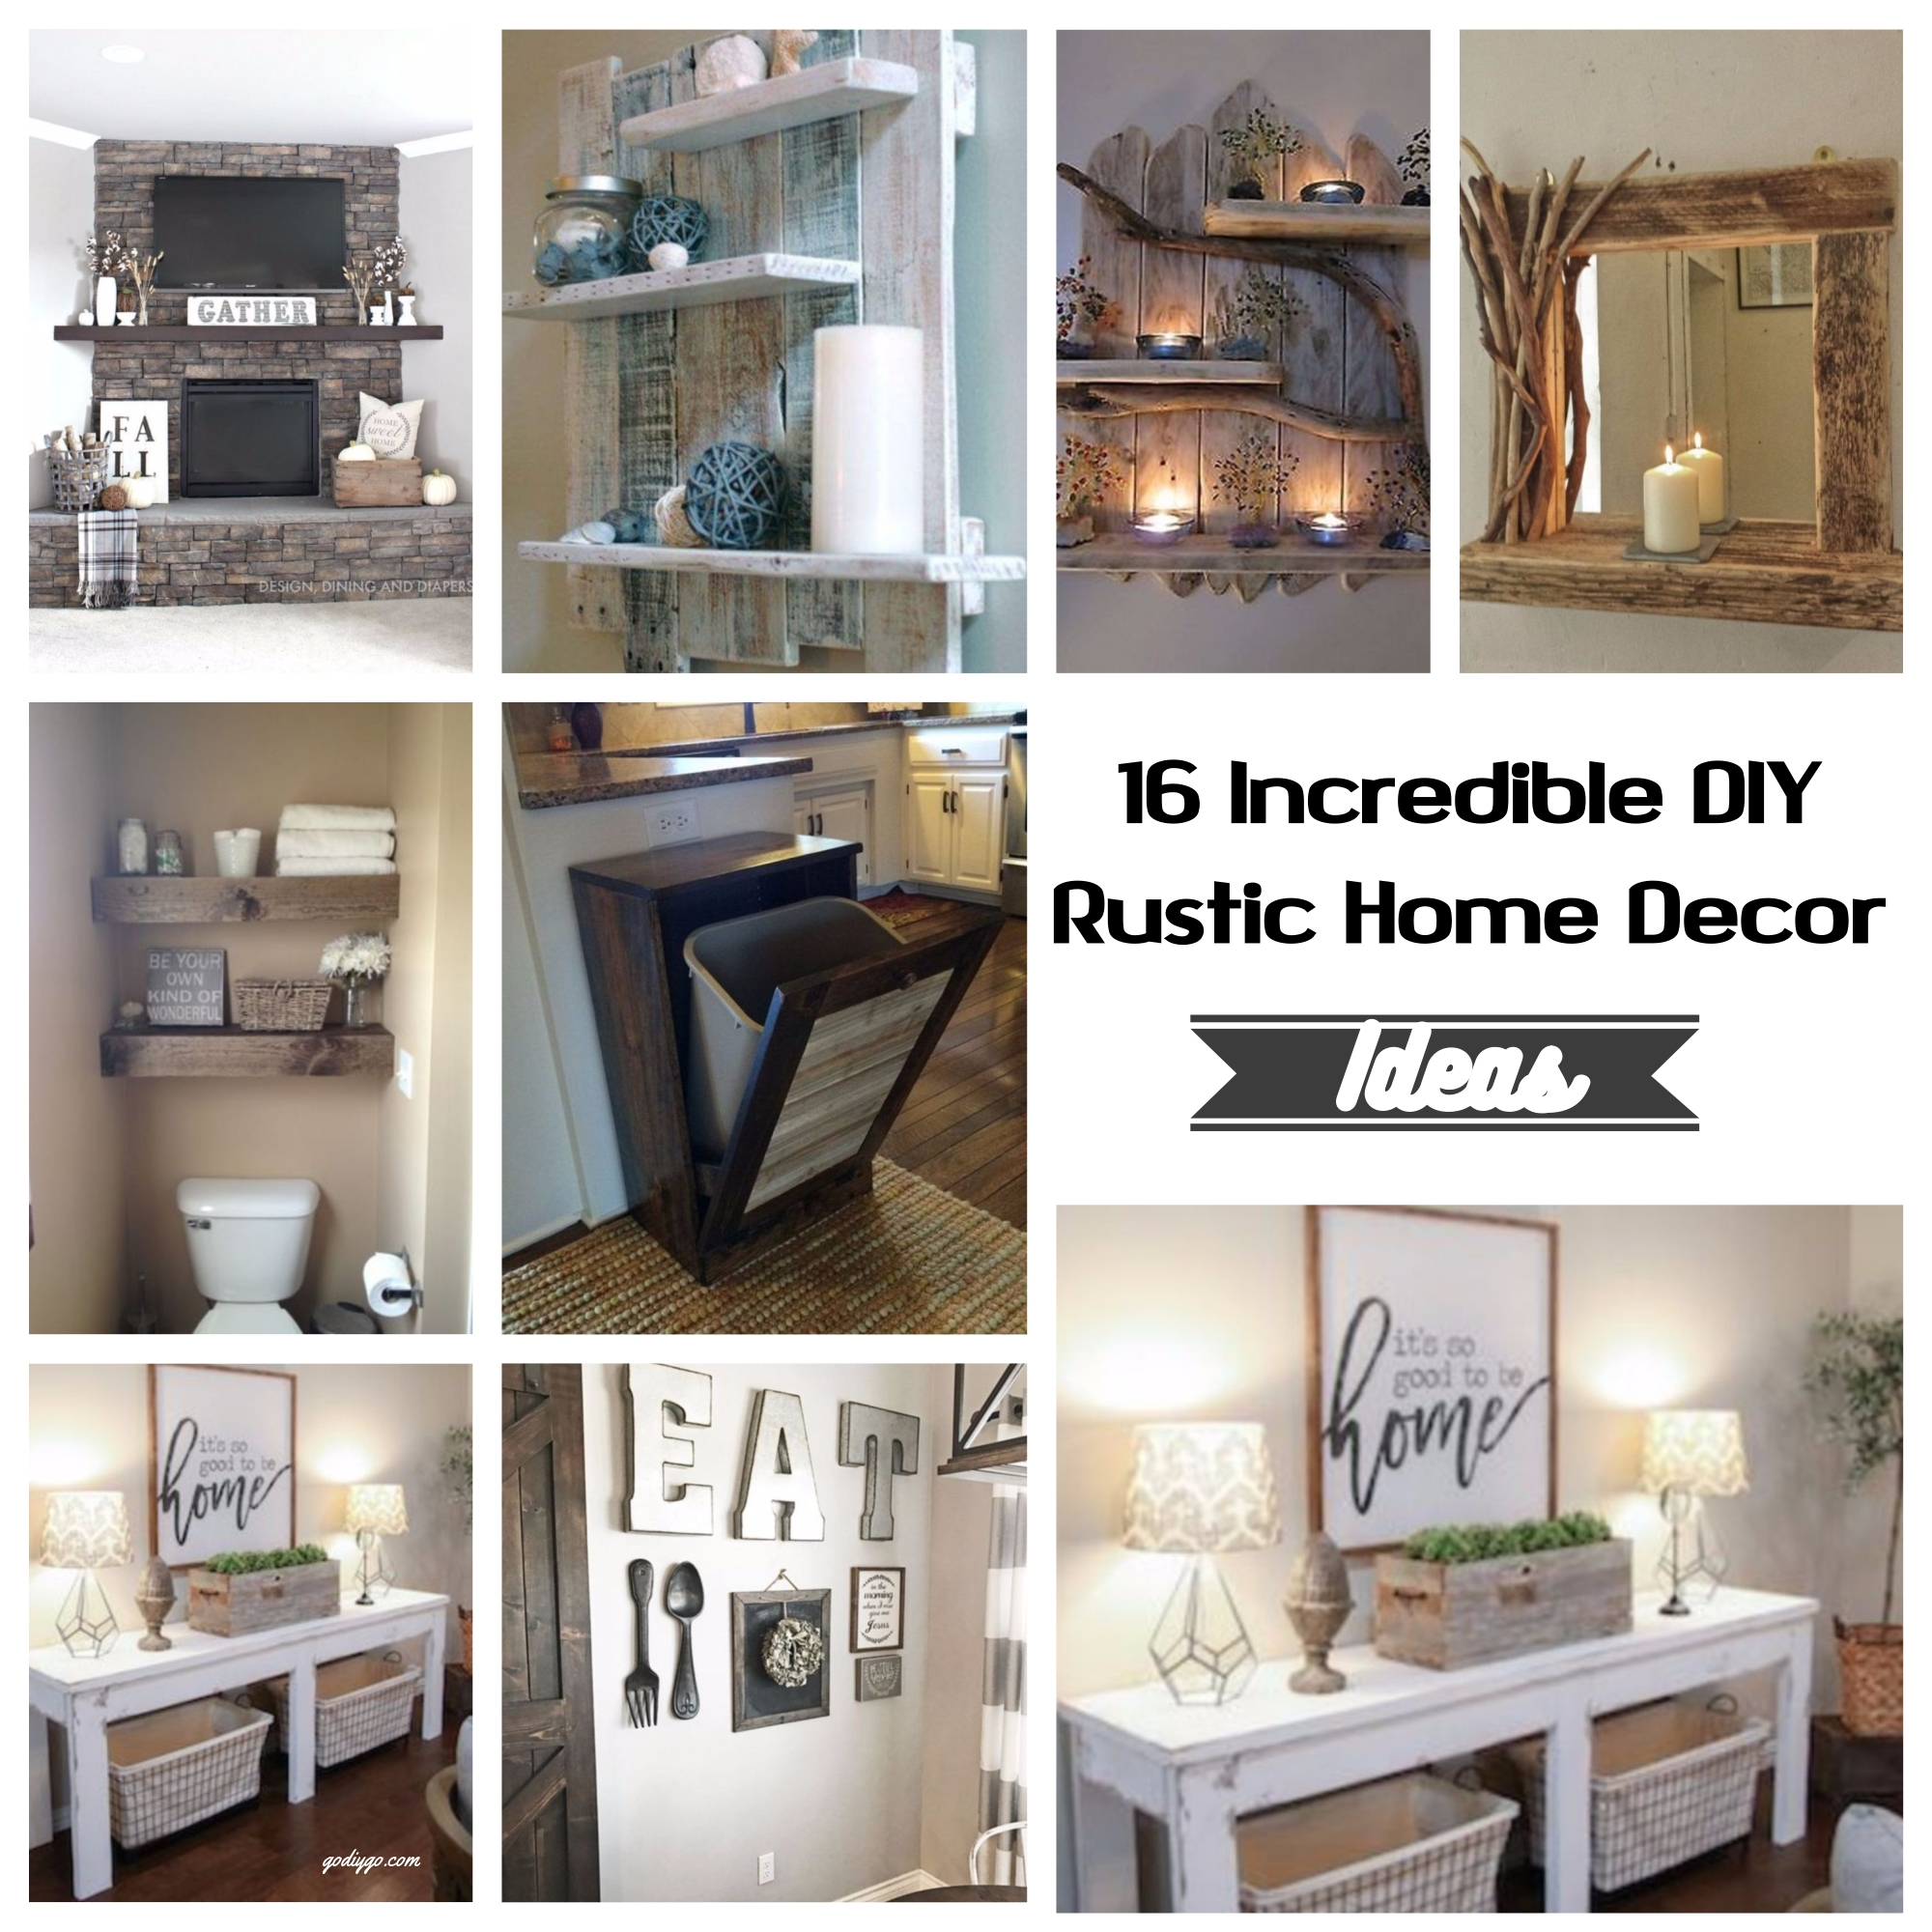 31 Rustic Diy Home Decor Projects: 16 Incredible DIY Rustic Home Decor Ideas